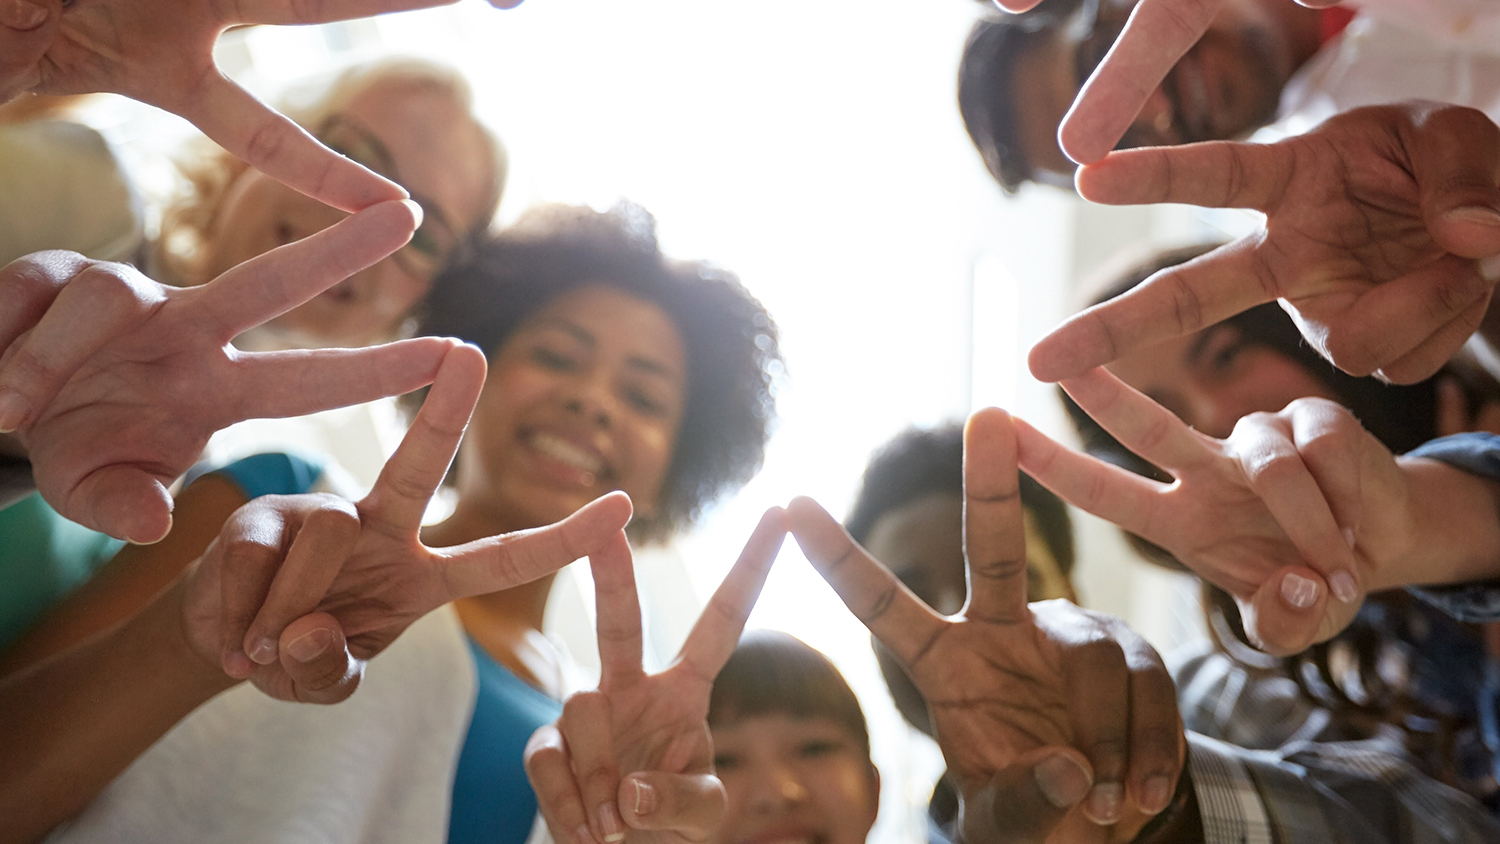 Friends holding peace sign around a circle.